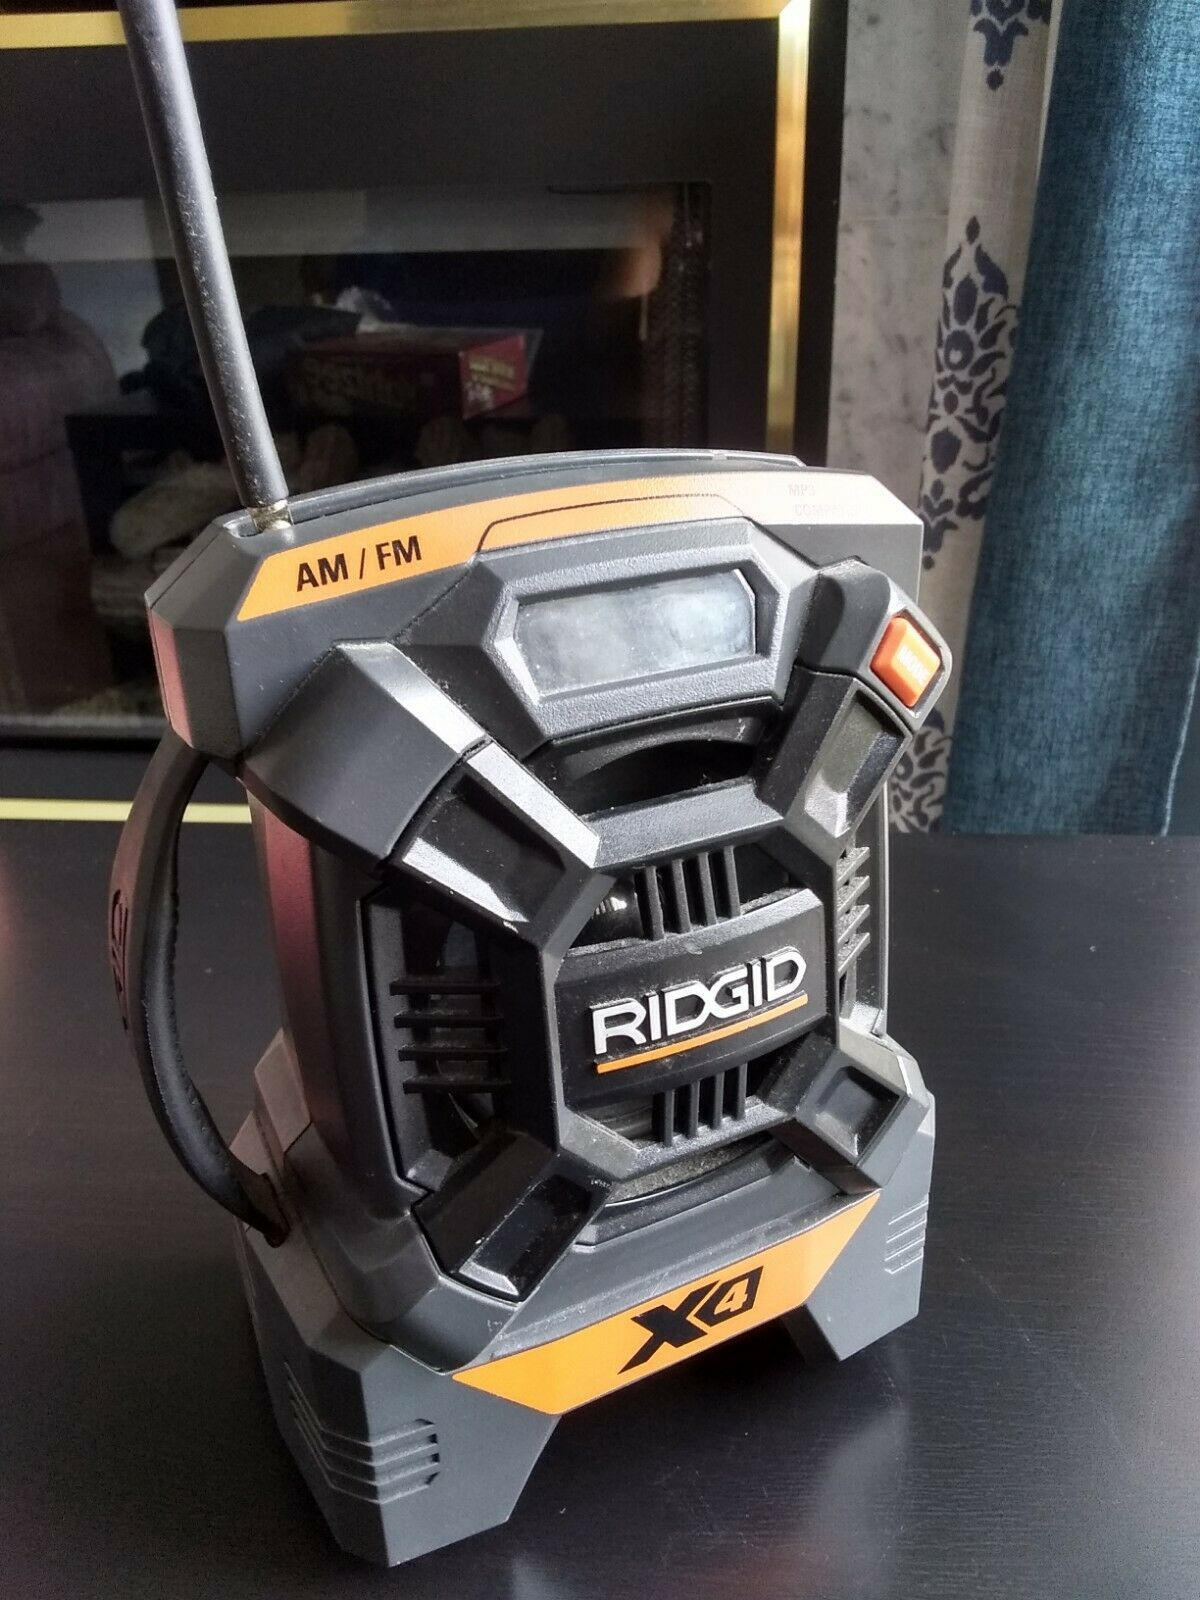 New RIDGID X4 18V CORDLESS MINI JobSite AM/FM MP3 Radio R84084 Fast FREE SHIP